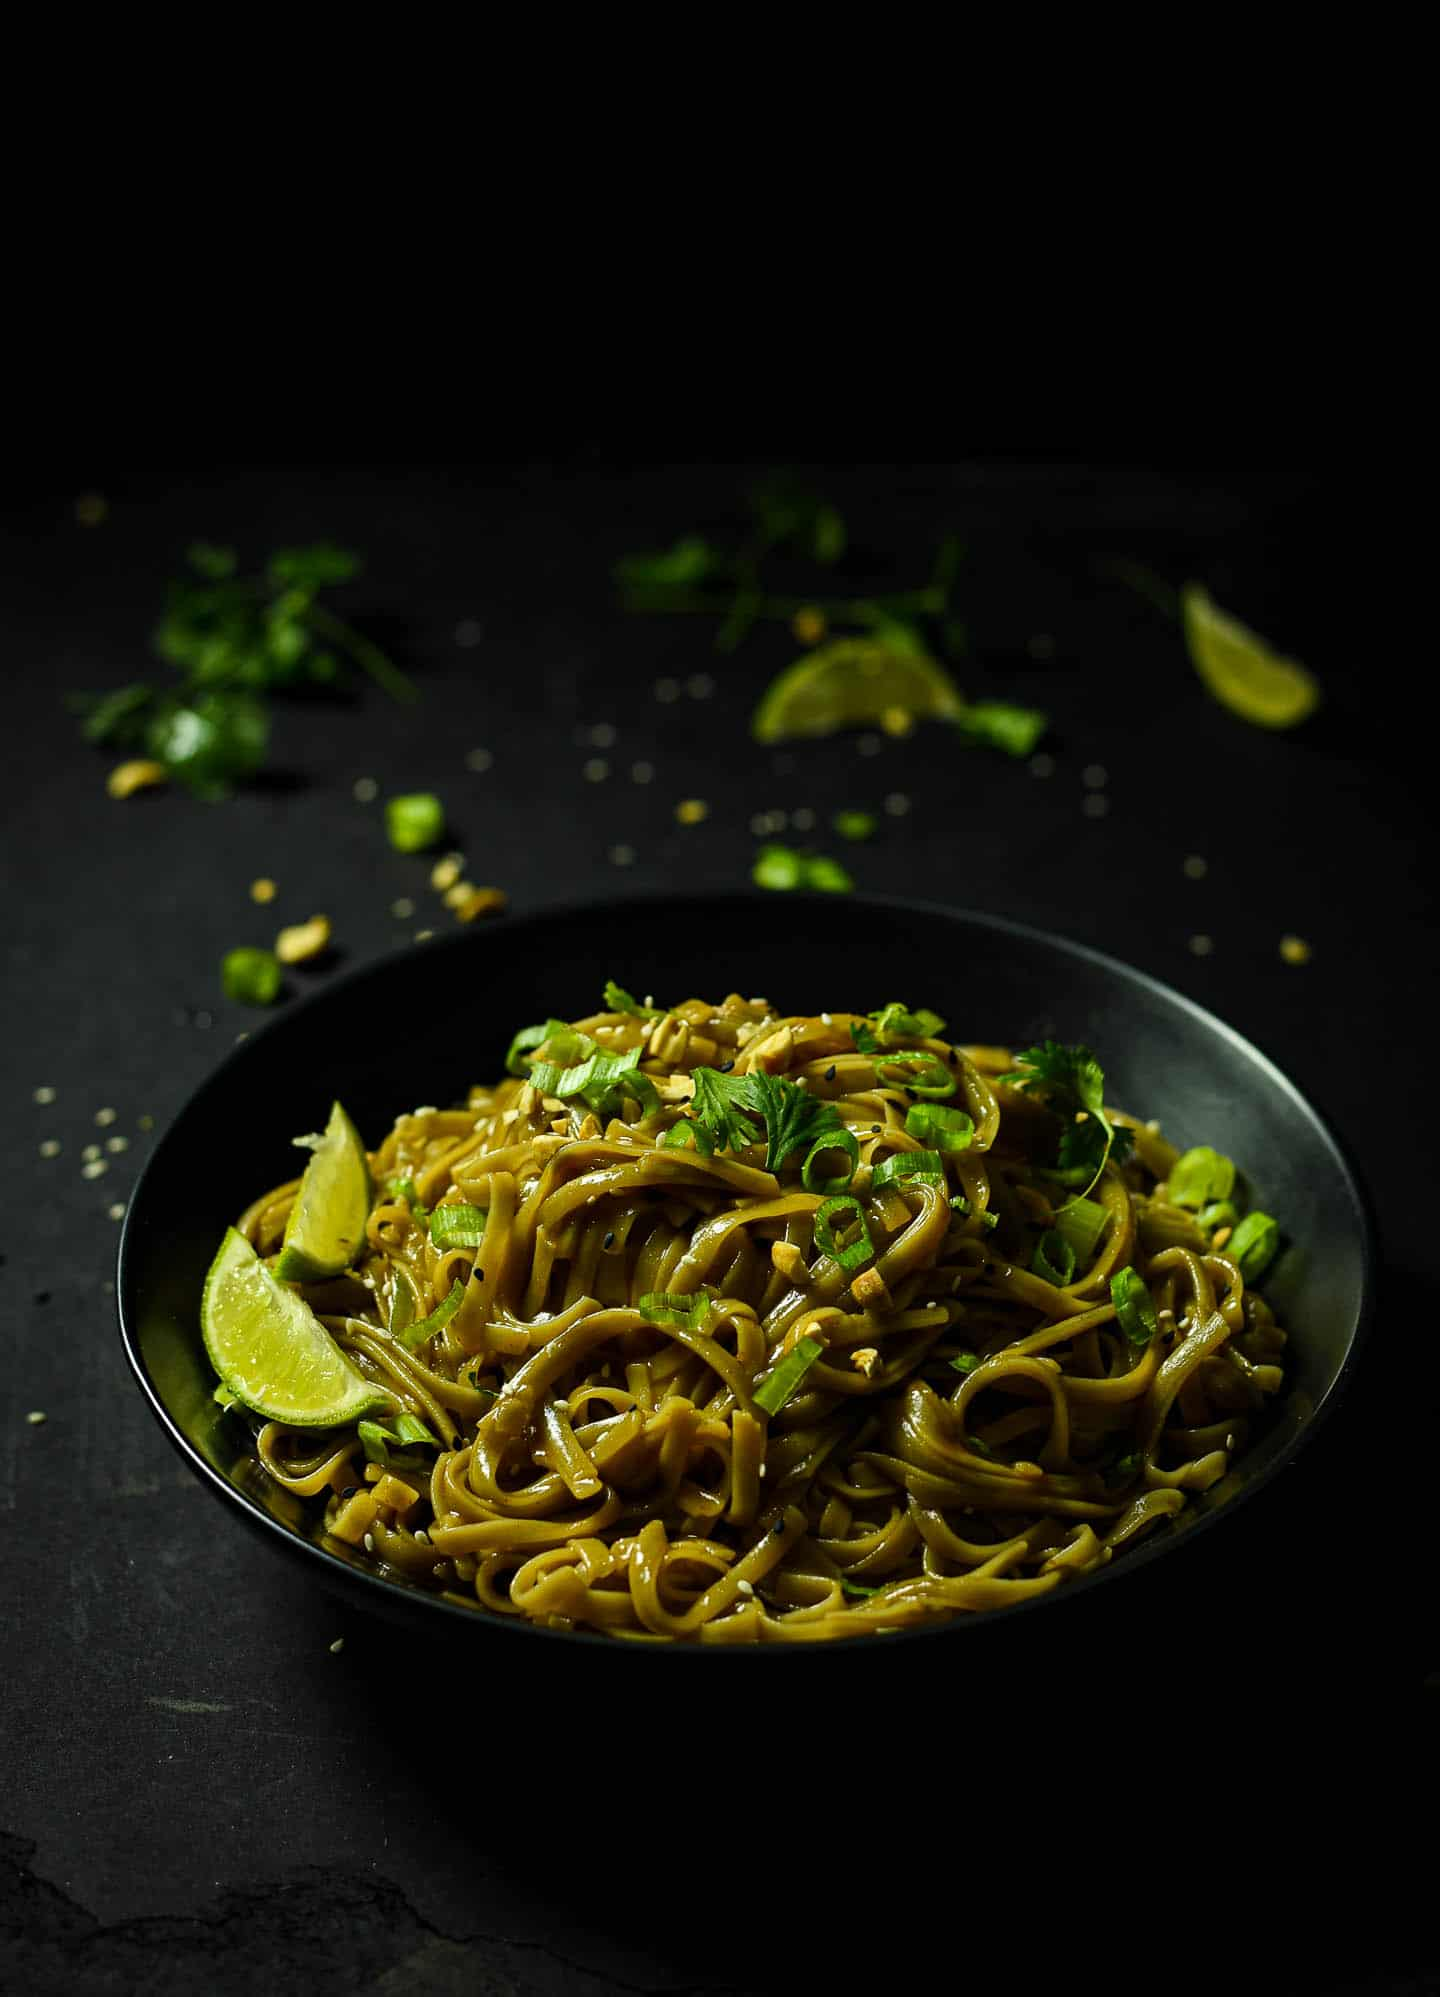 This Spicy Asian Noodle Bowl is so easy to make and uses very simple ingredients already in your pantry. It's fast, delicious, and ready in as little as 5 MINUTES! Optional toppings included peanuts, cilantro, green onions, sesame, and a dash of lime.